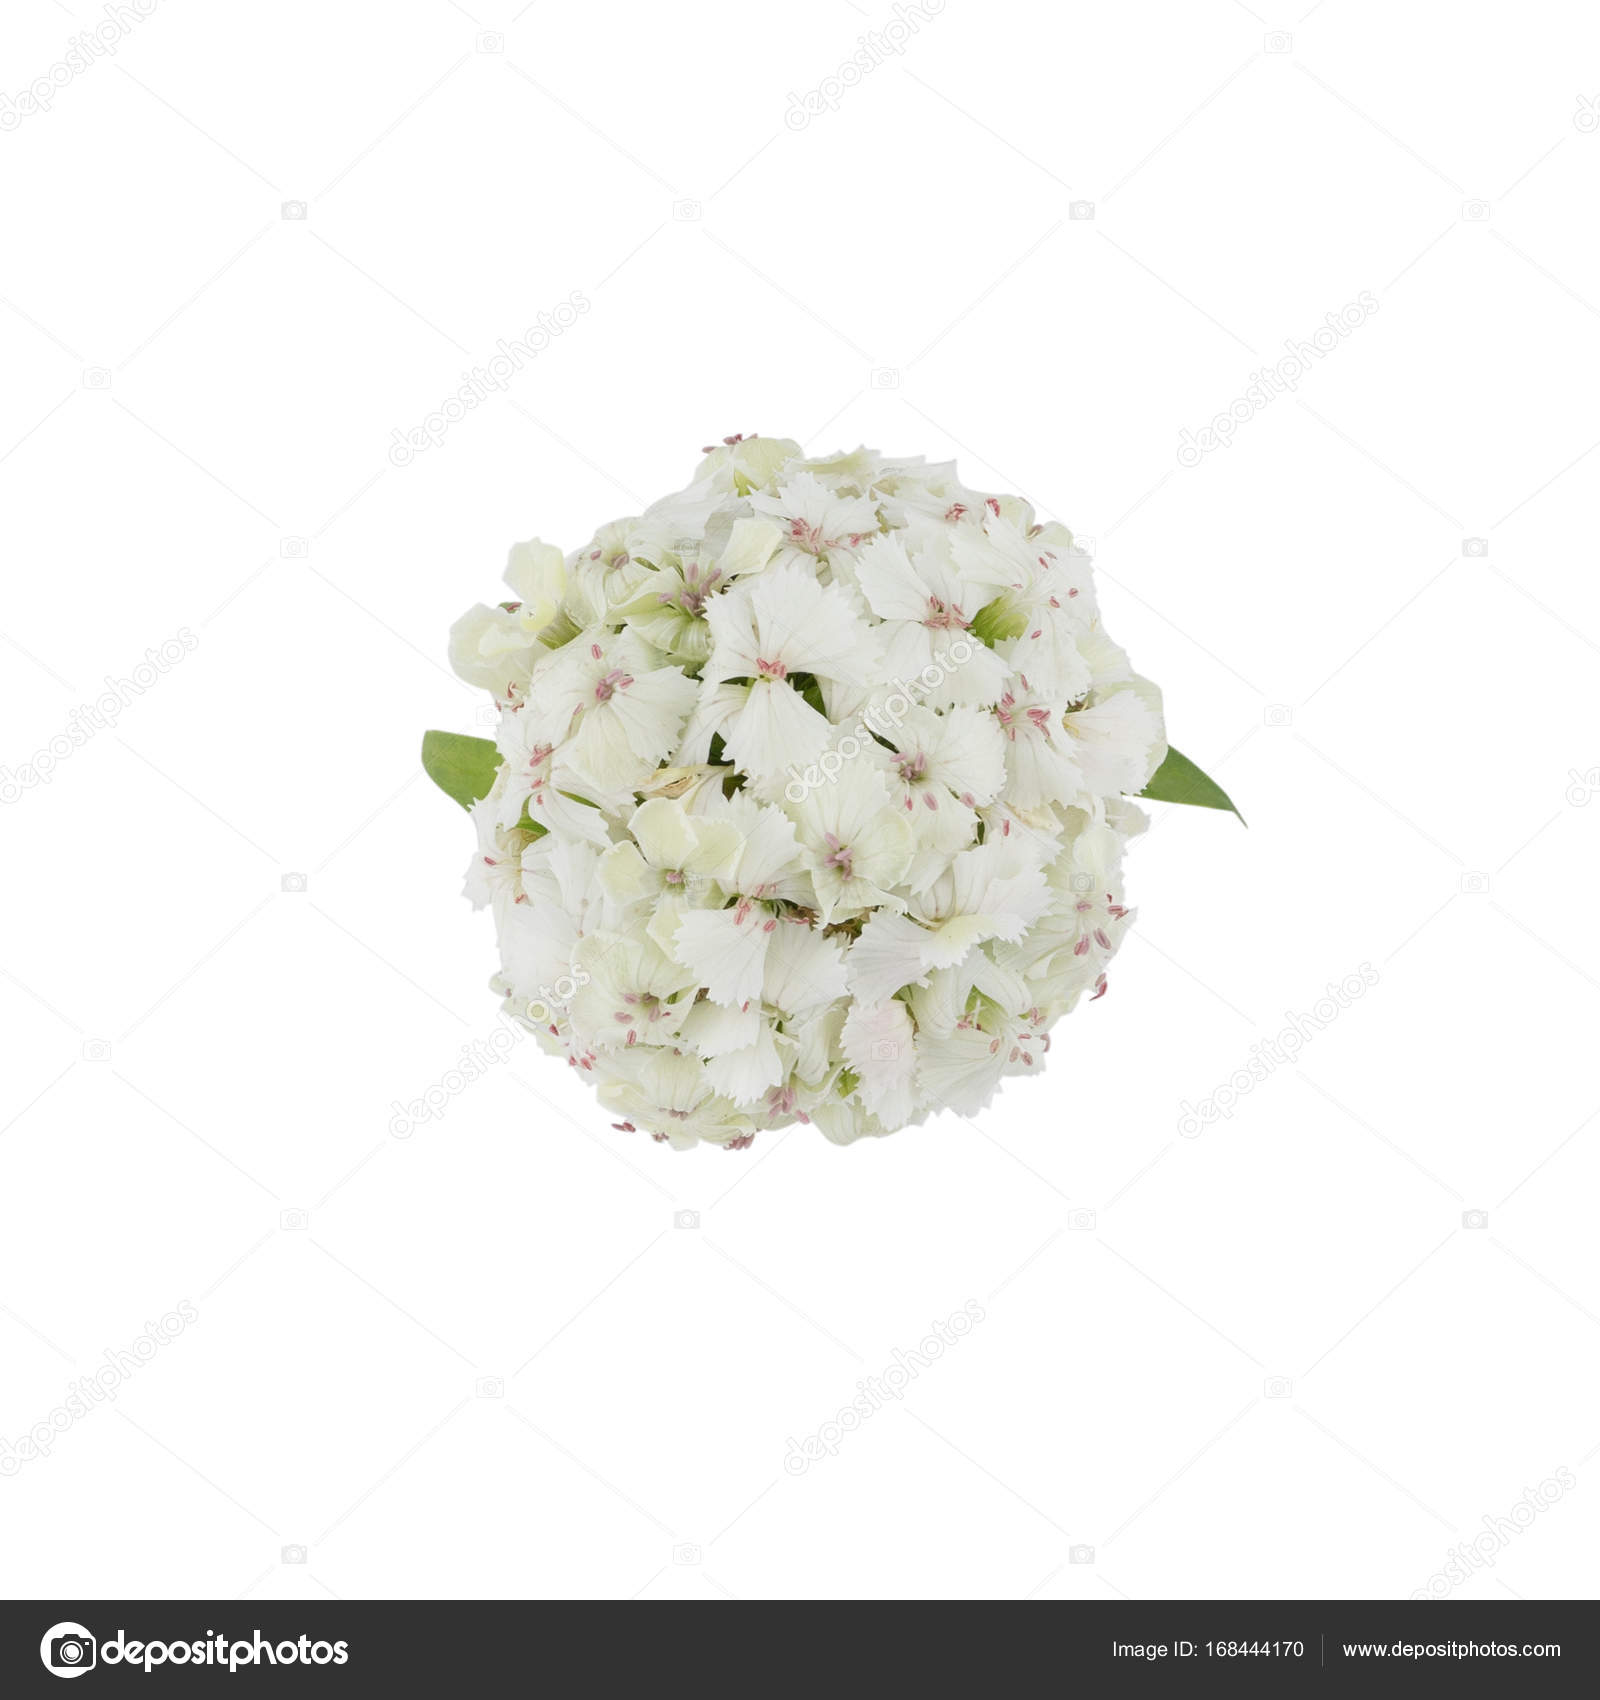 White sweet william flowers from top view stock photo nathiyai white sweet william flowers from top view stock photo mightylinksfo